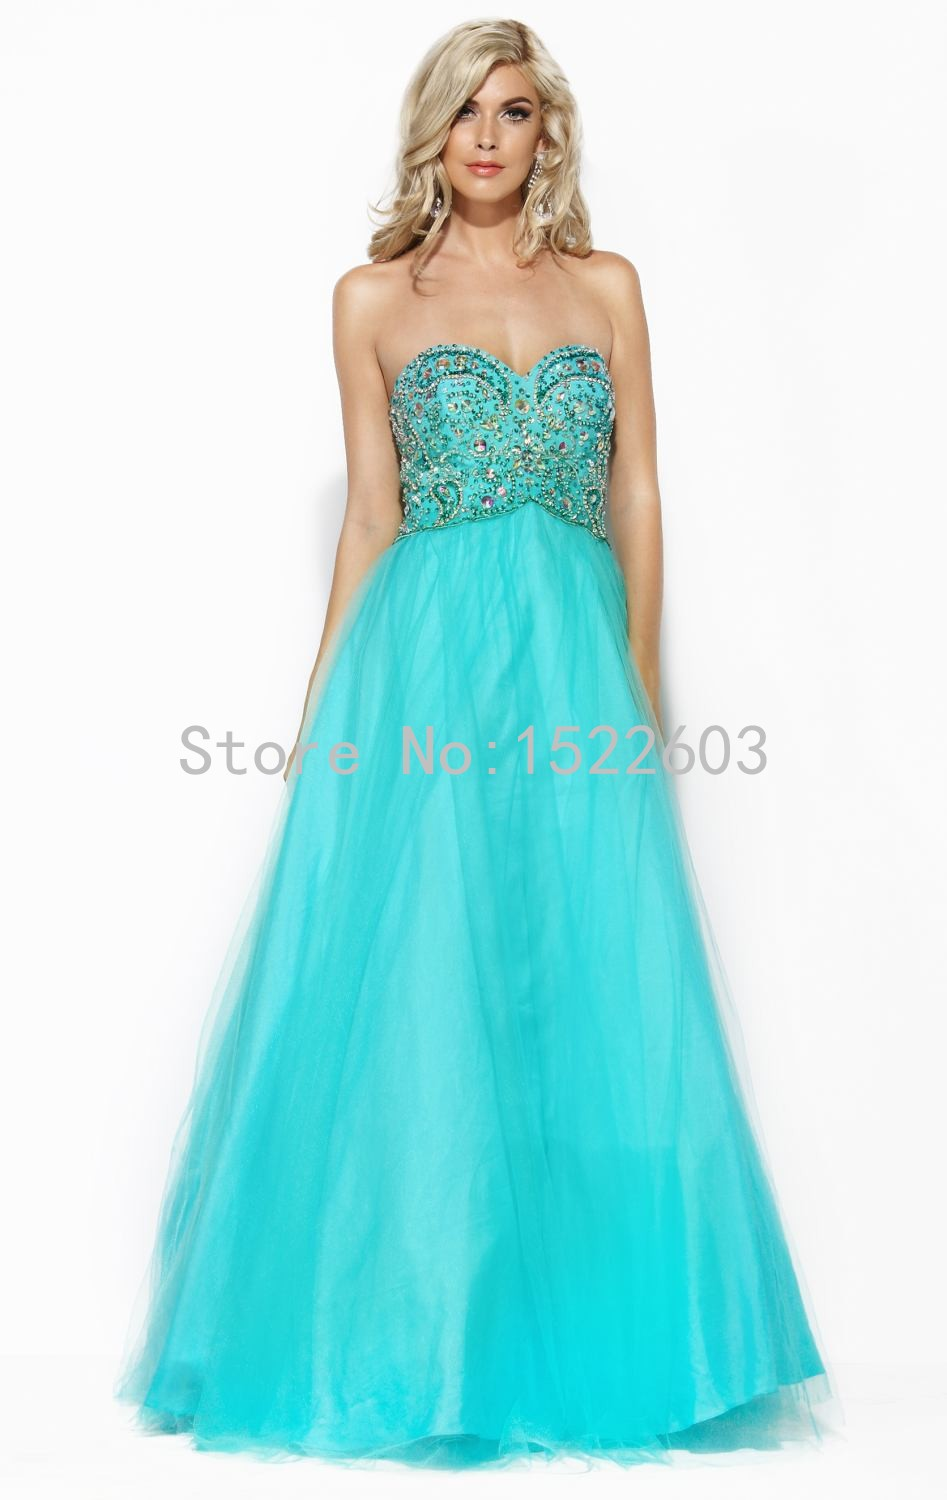 Romantic 2015 Best Selling Mint Green Sweetheart Beading Chiffon Long Cheap Prom Dresses Sexy Amazing Fashion Evening Gown A2100